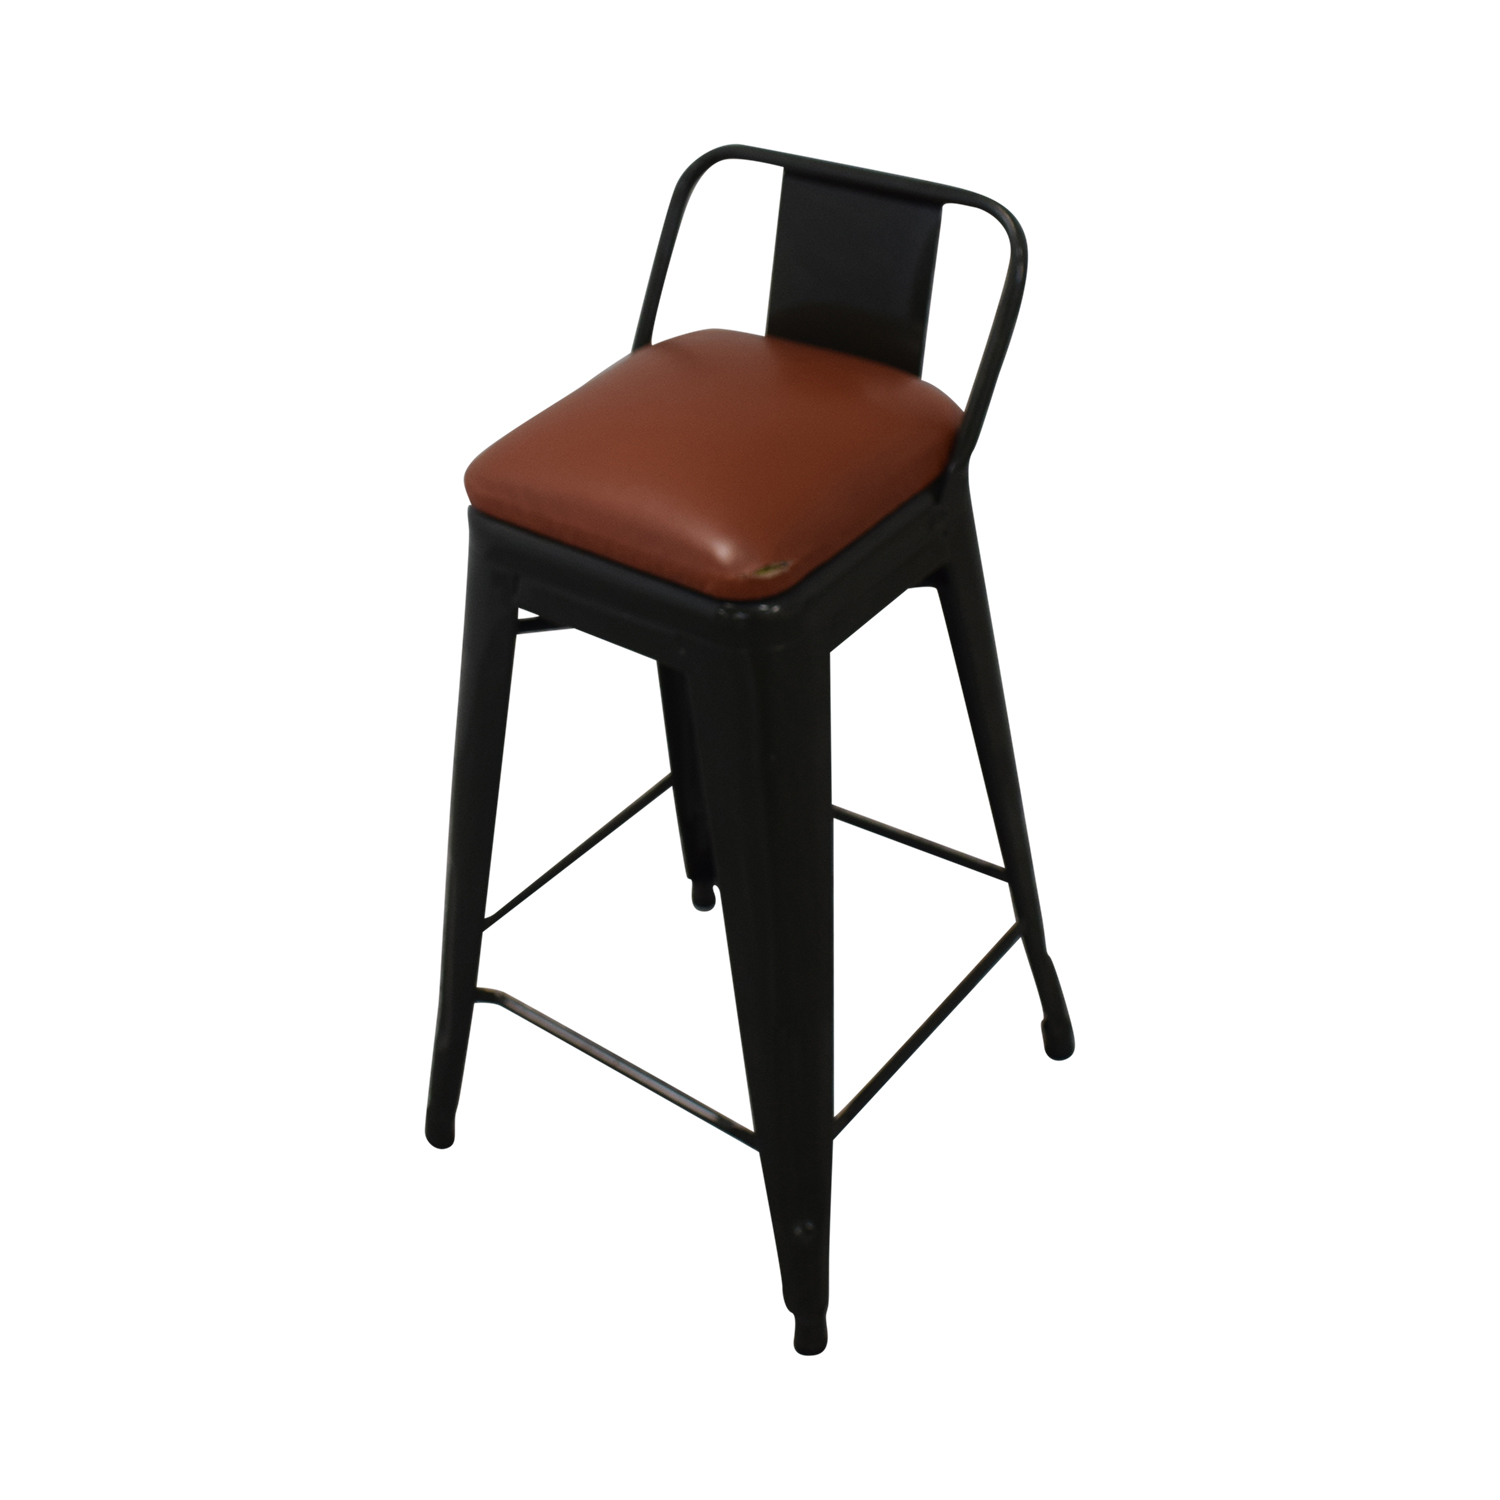 shop Tolix Industrial Bar Stools Tolix Stools